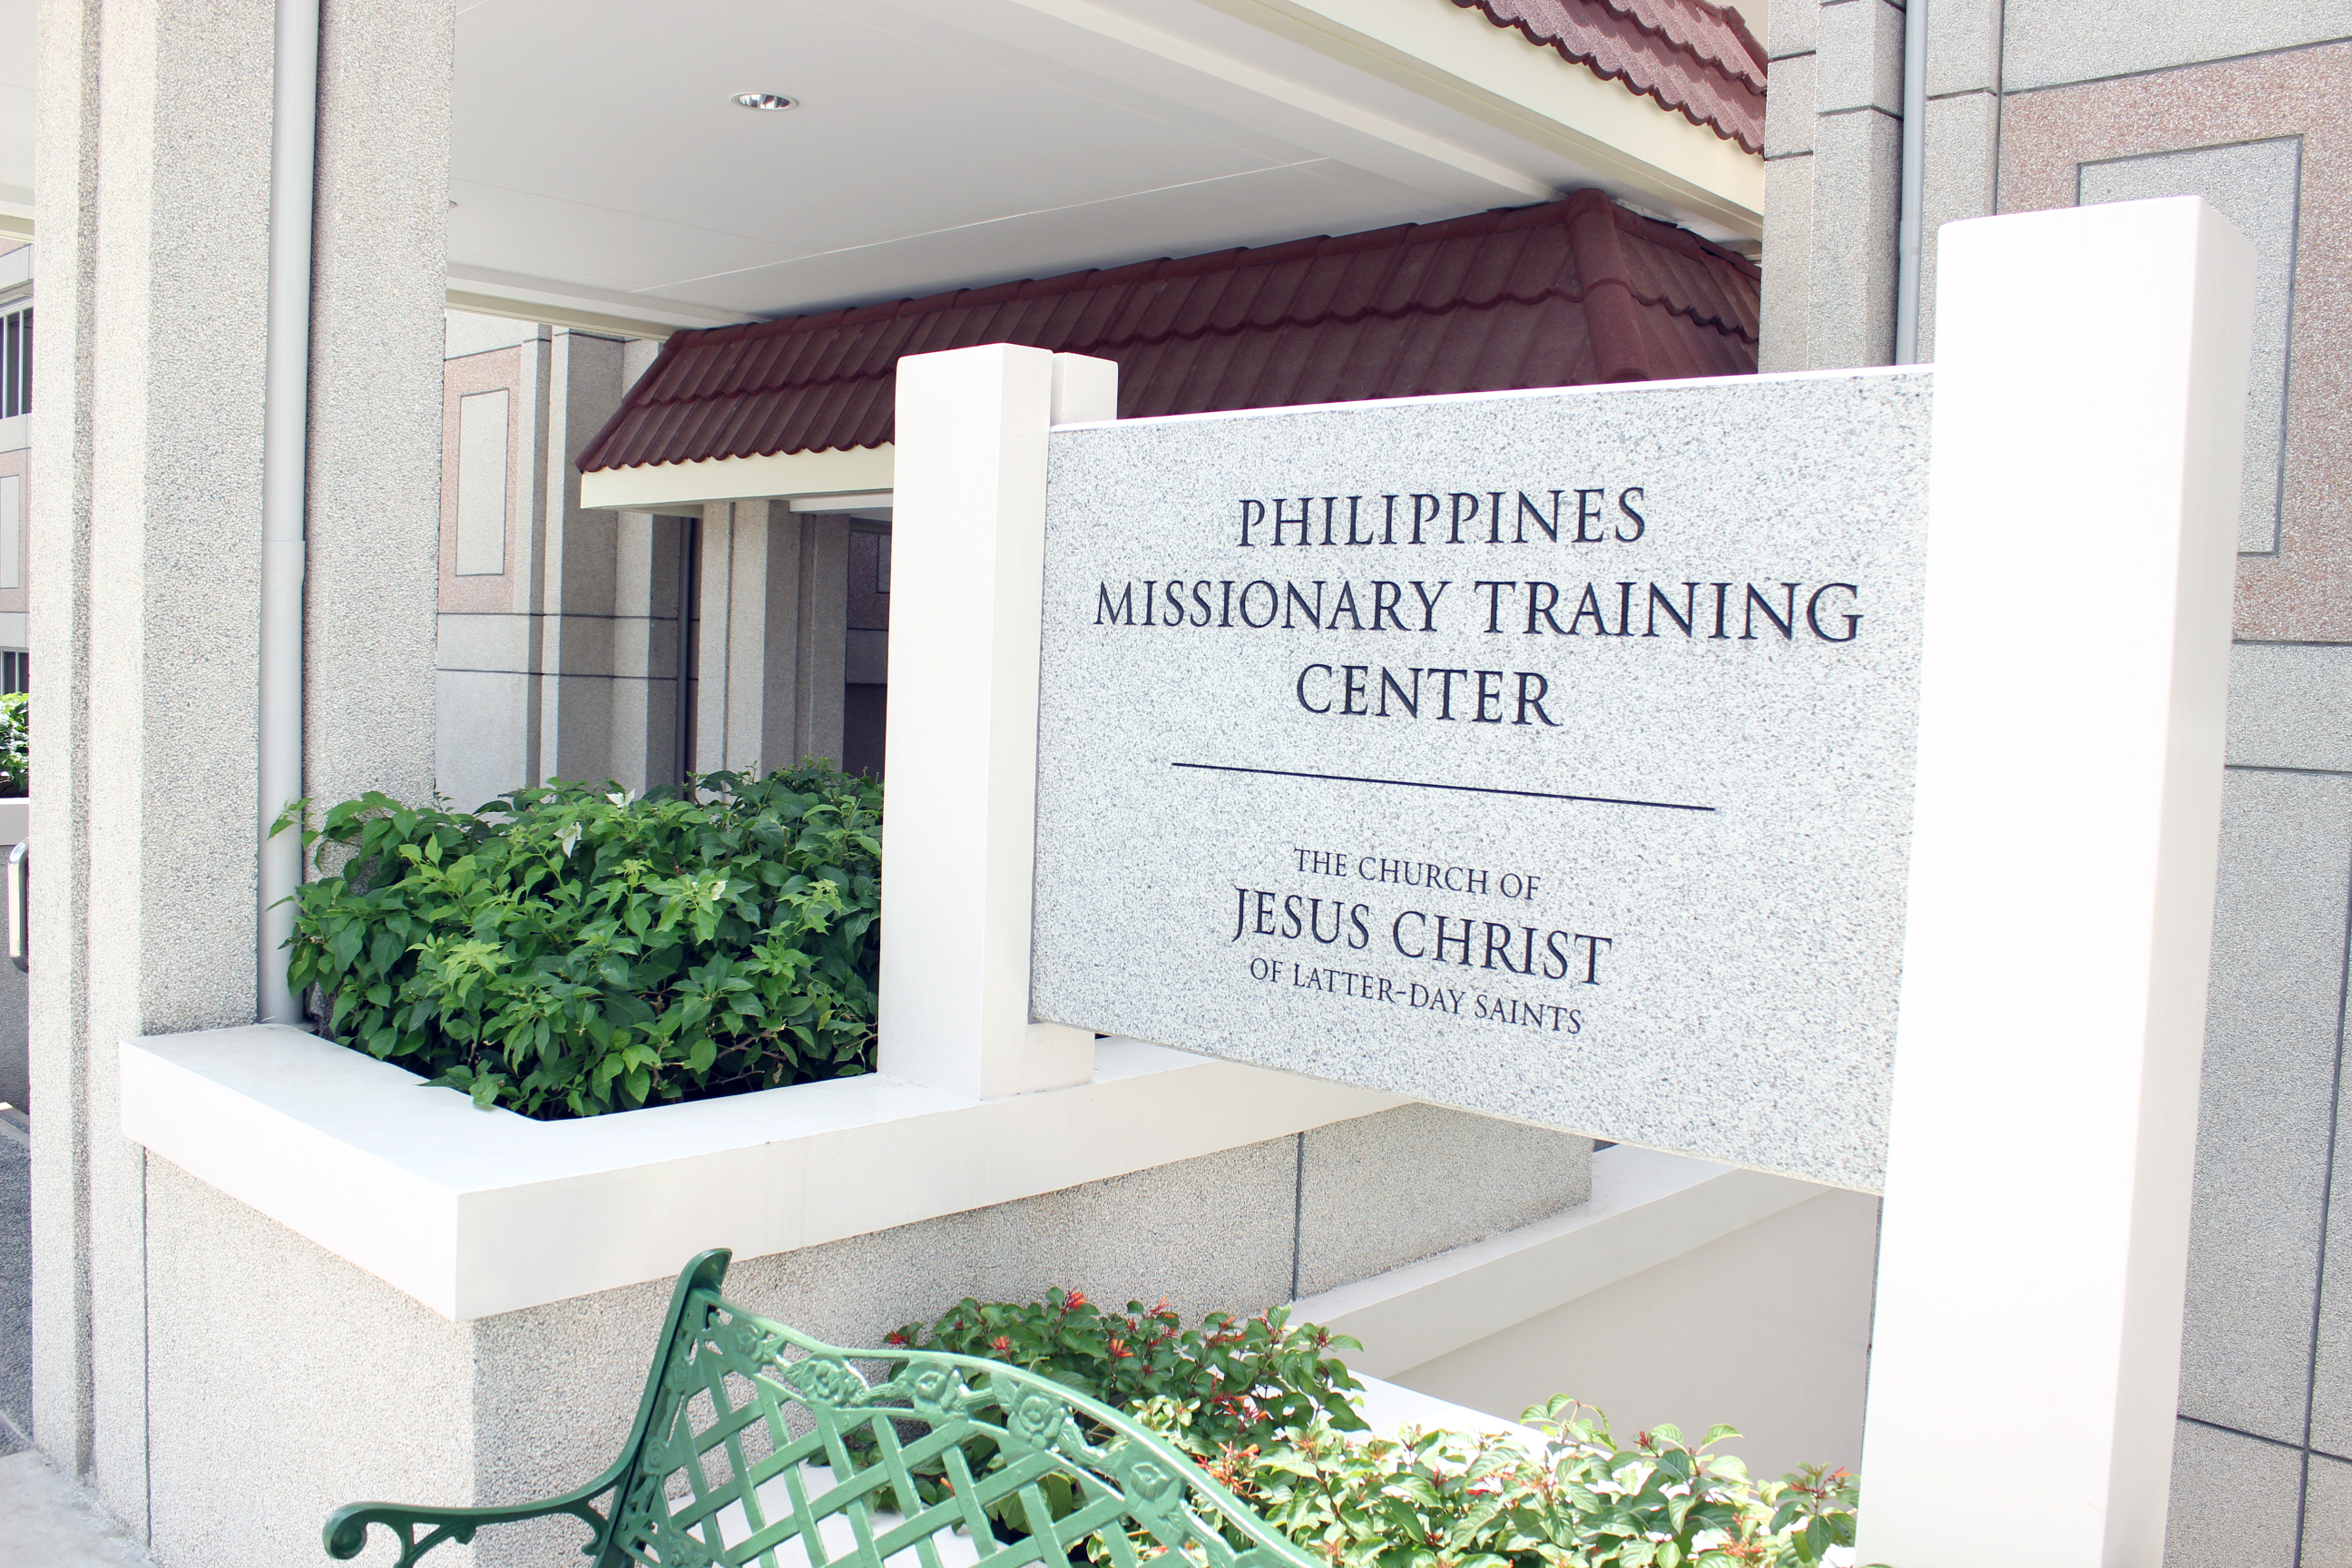 The Philippines Missionary Training Center, which was expanded in 2017.